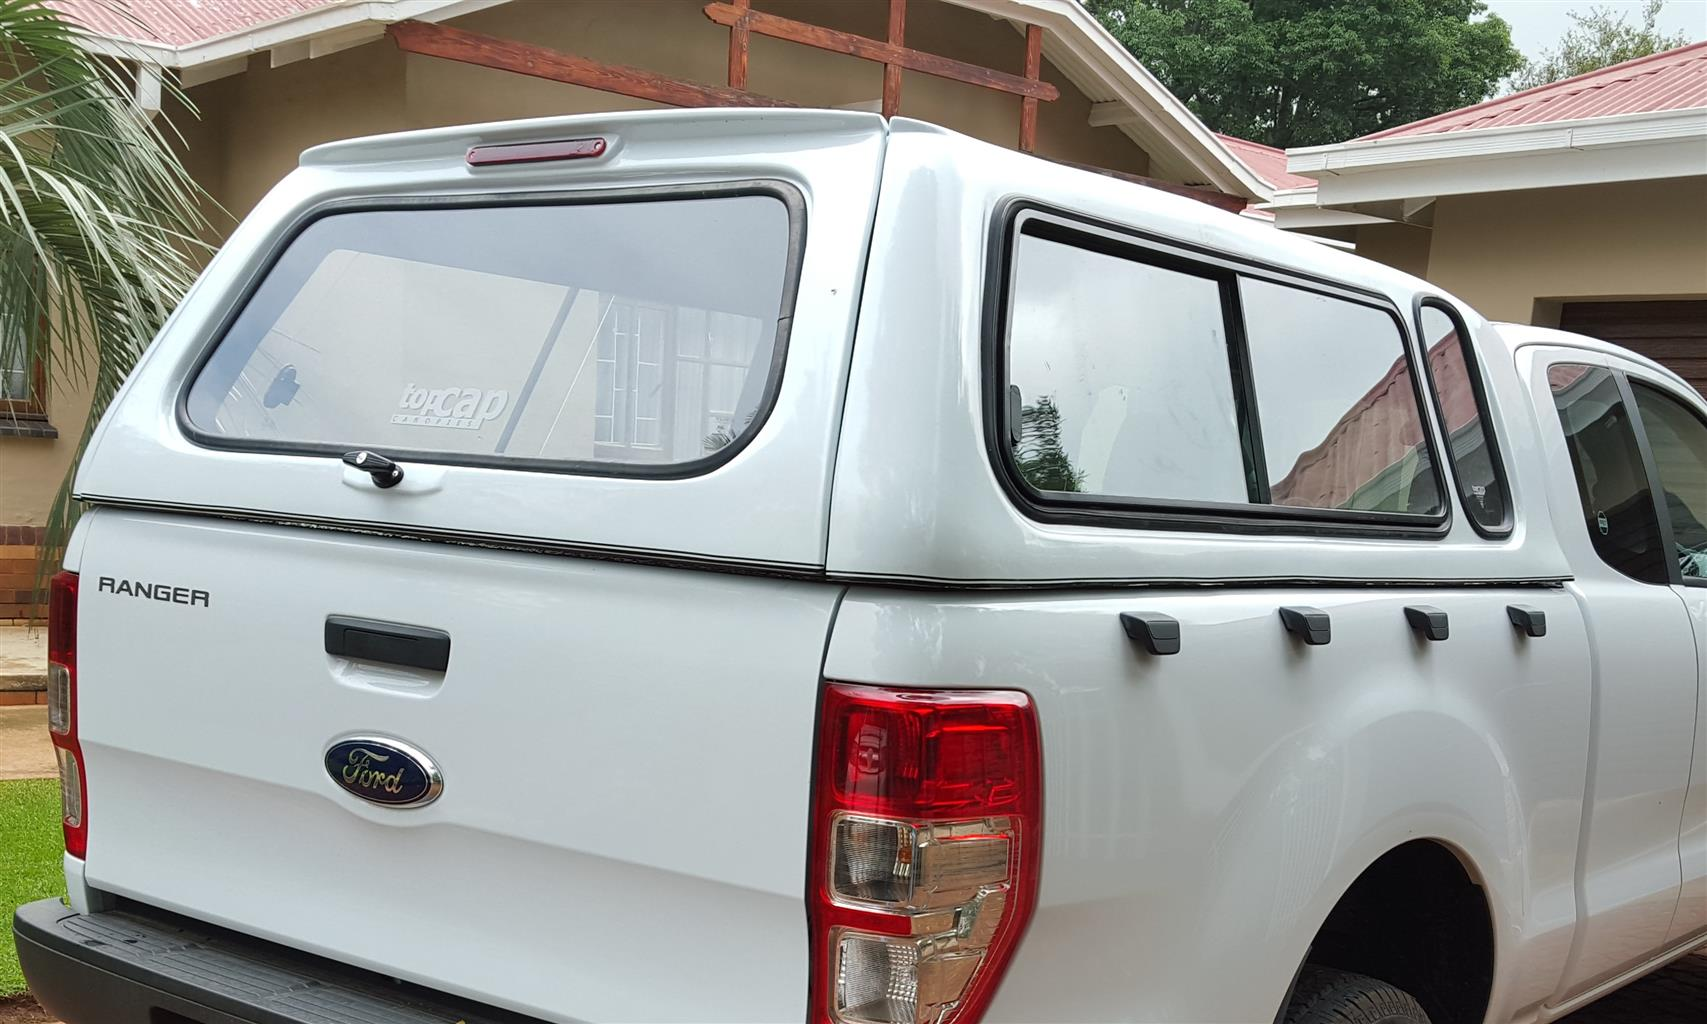 STD GC FORD RANGER T6 SUPERCAB LATEST MODEL LOW-LINER BAKKIE CANOPY